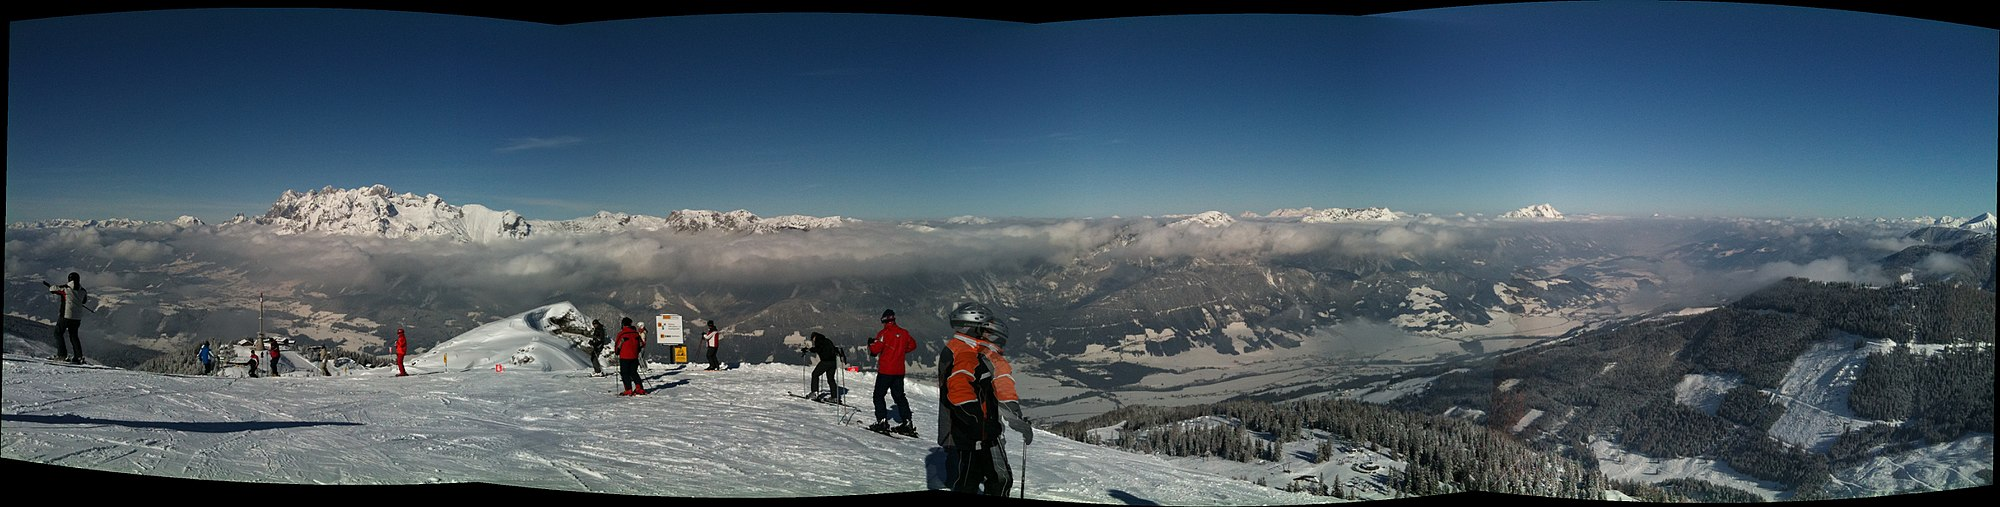 Panorama Schladming z tras narciarskich